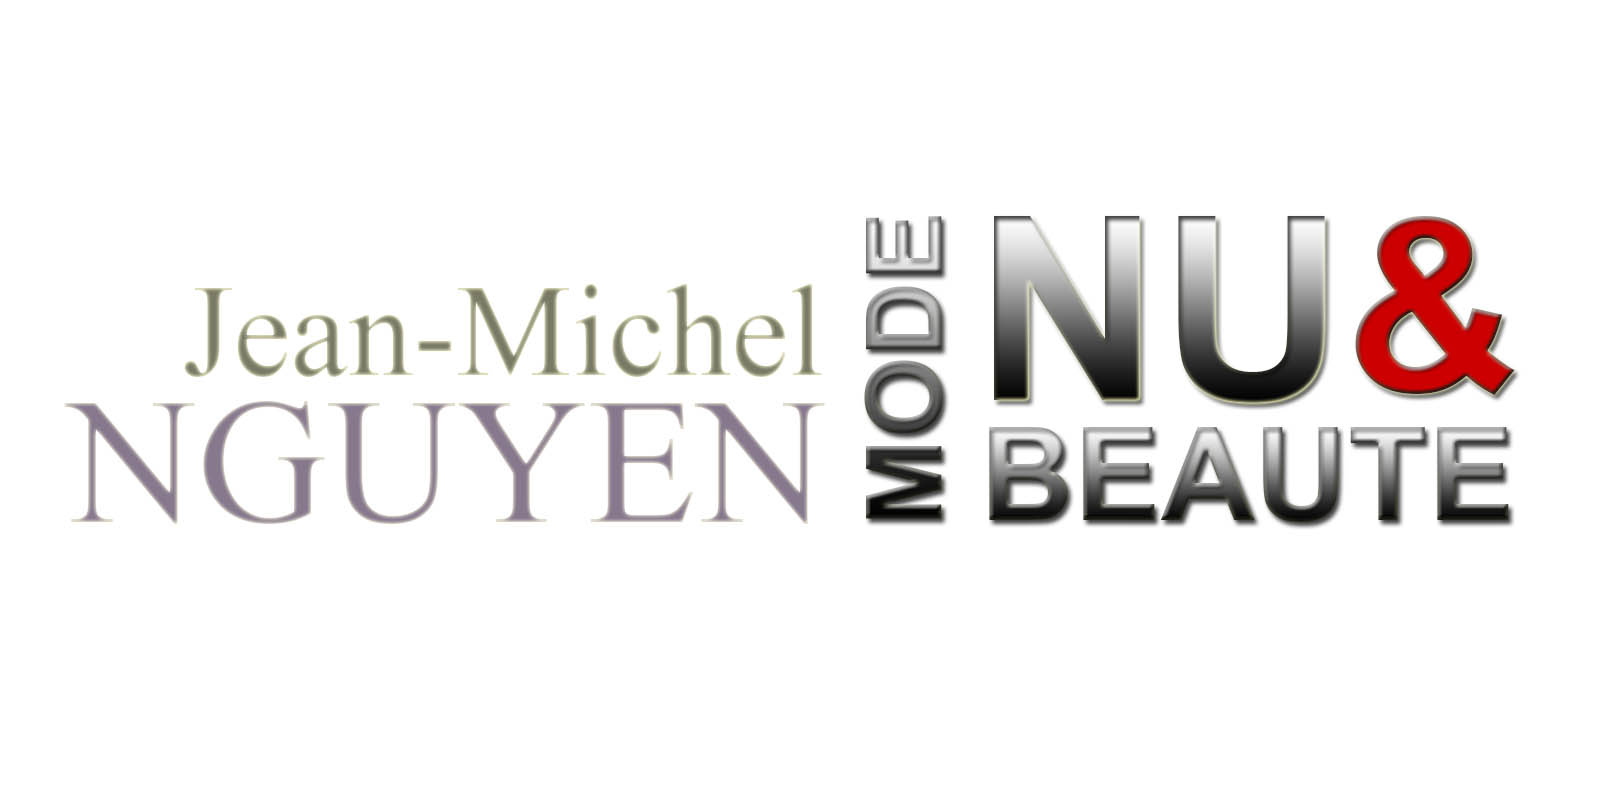 Jean-Michel Nguyen is published on NUMAG Nude Editorial Magazine, and he loves it !